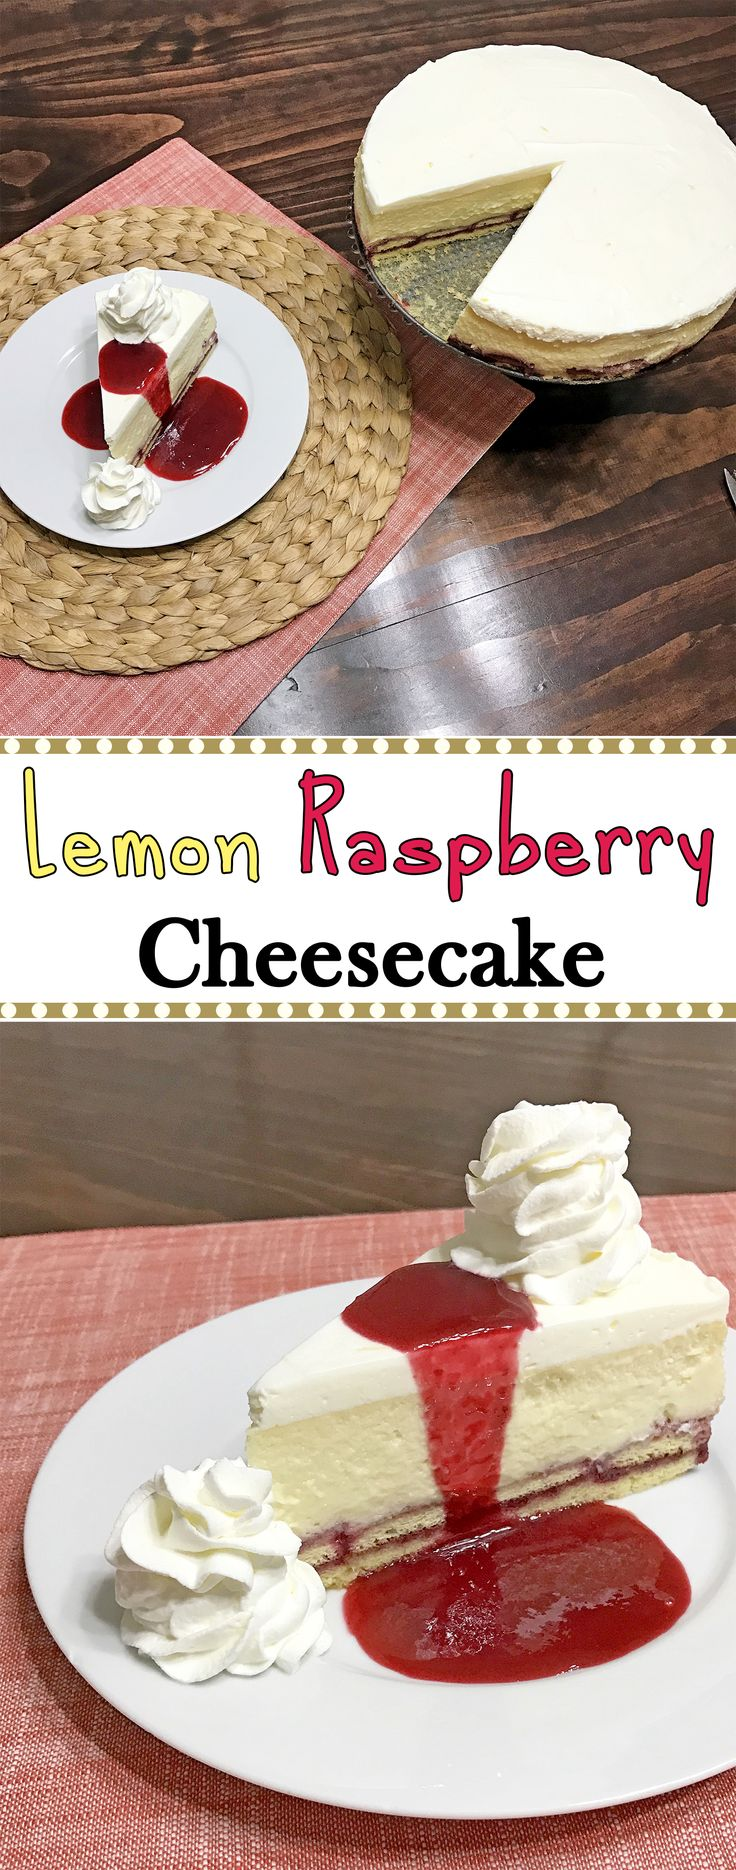 Homemade version of The Cheesecake Factory's Lemon Raspberry Cream Cheesecake.